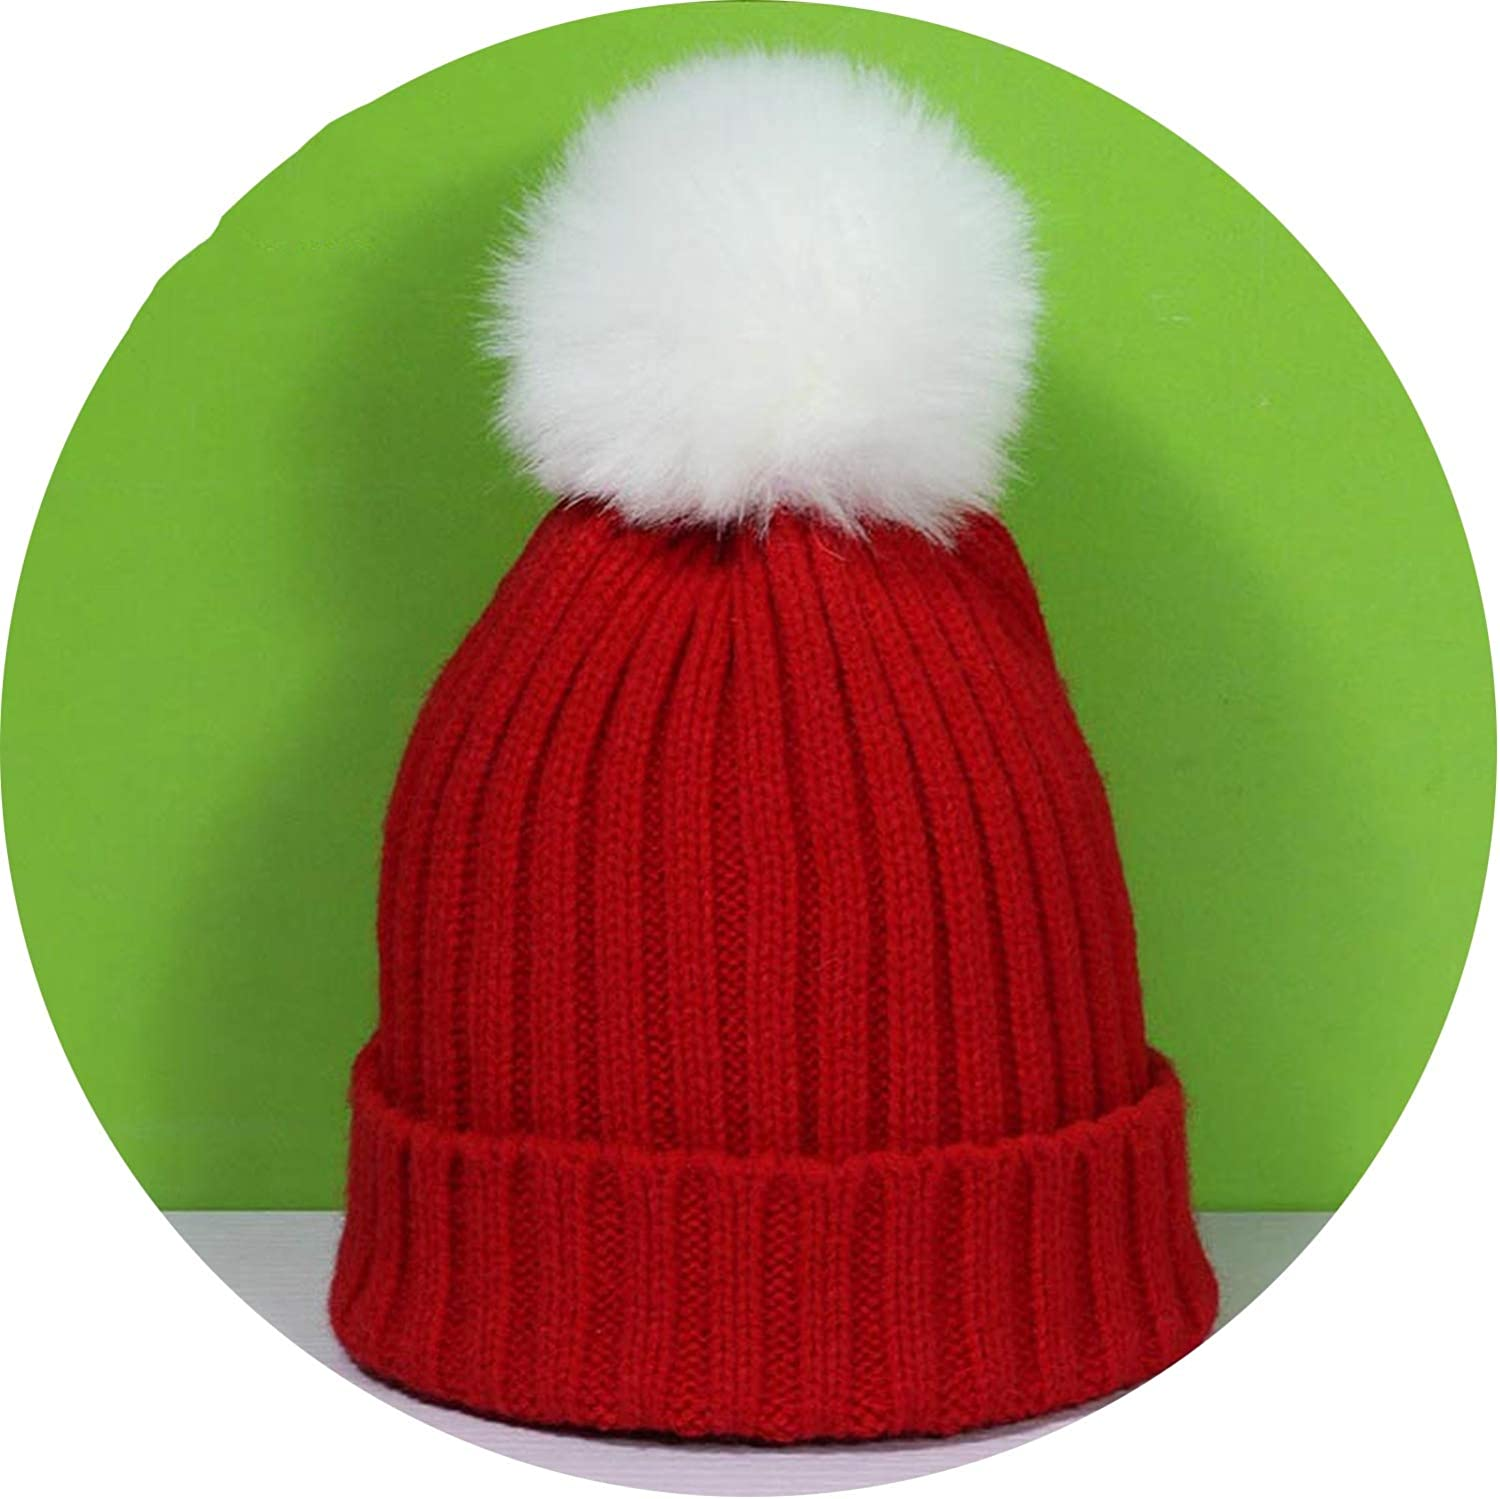 Noon-Sunshine/&cap Childrens Knit Beanie Hat pom pom Winter Hat Boy Girl Warm Skullies Bone,